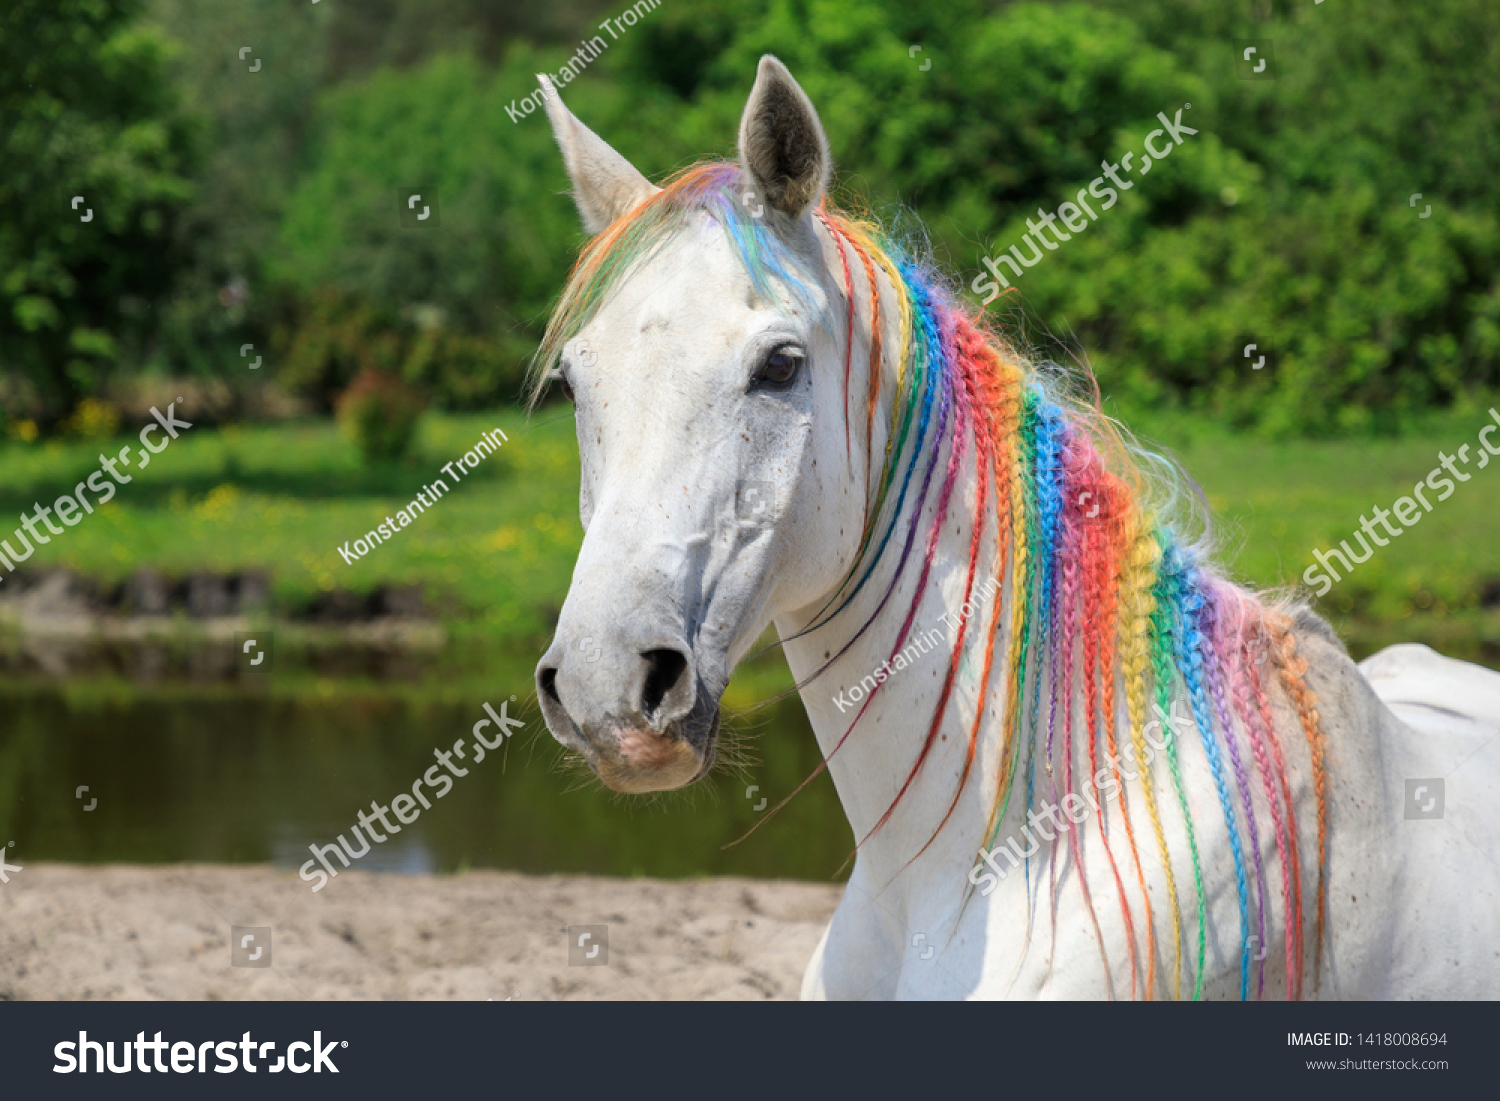 Arabian Horse Painted Rainbow Colors Outdoors Stock Photo Edit Now 1418008694